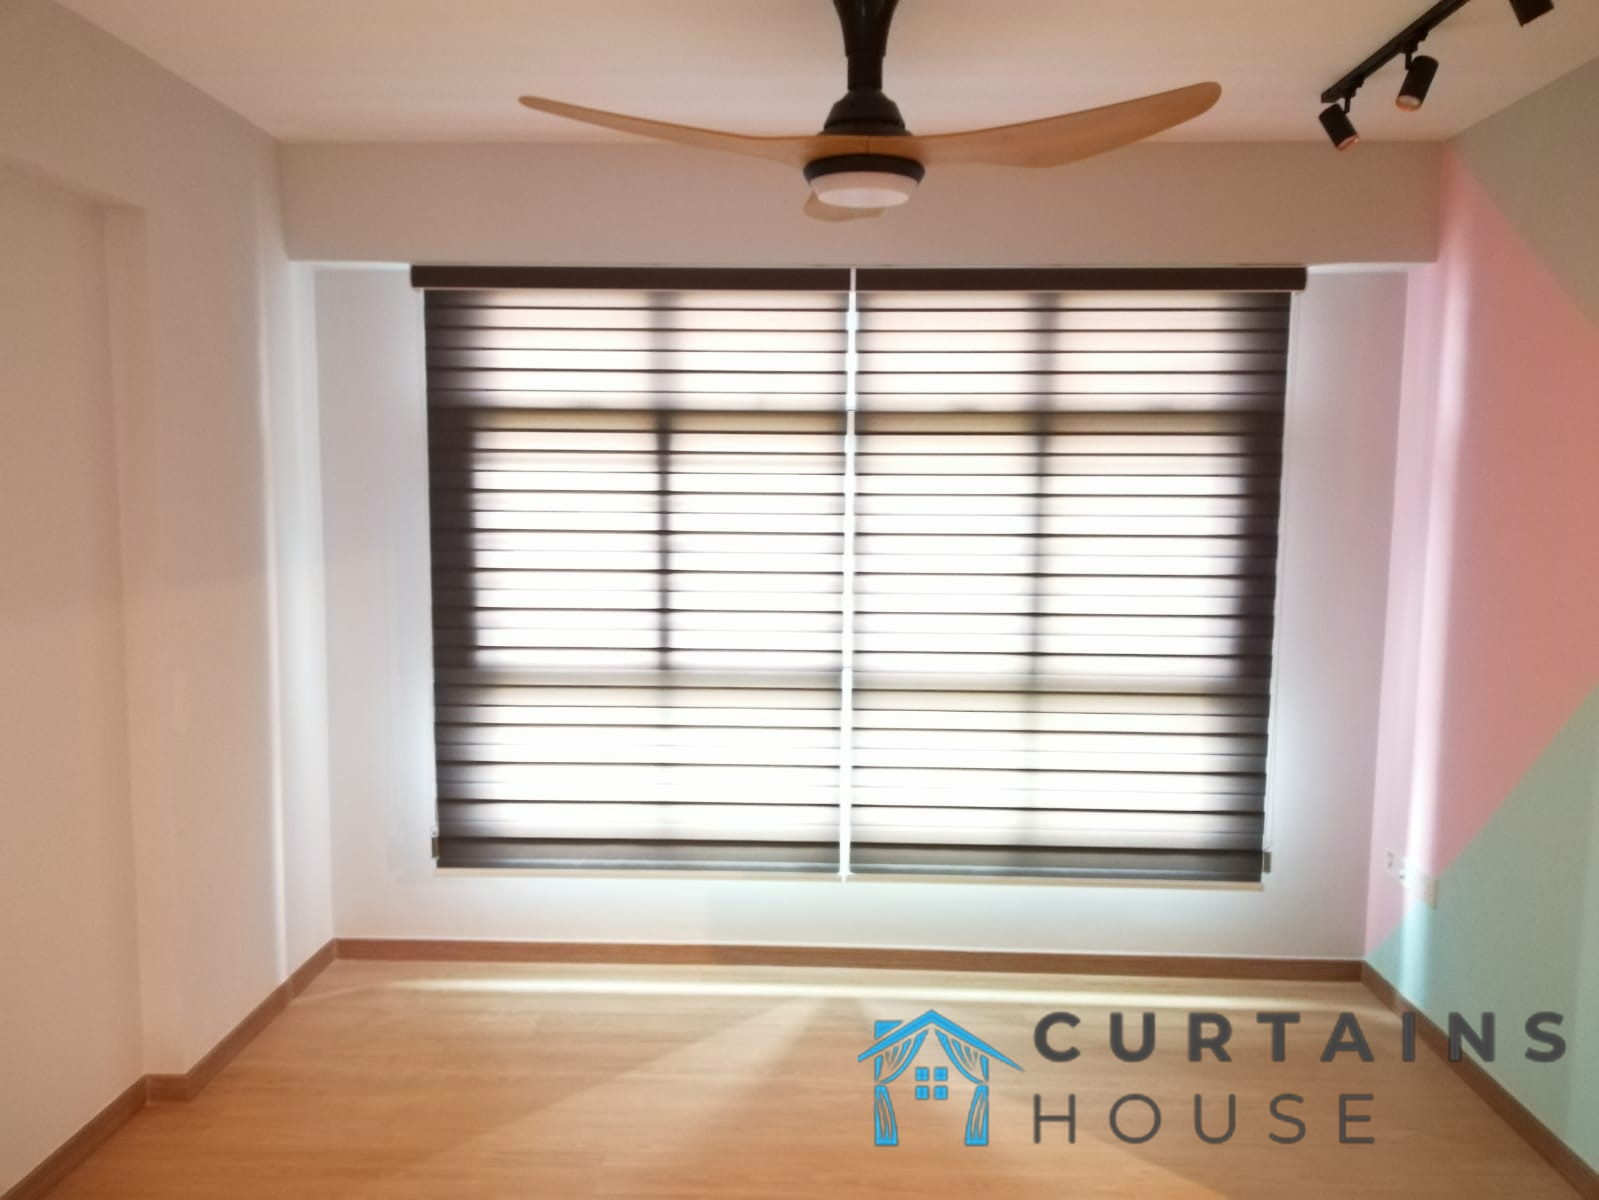 Korean Blinds Living Curtains House Singapore HDB – Bishan